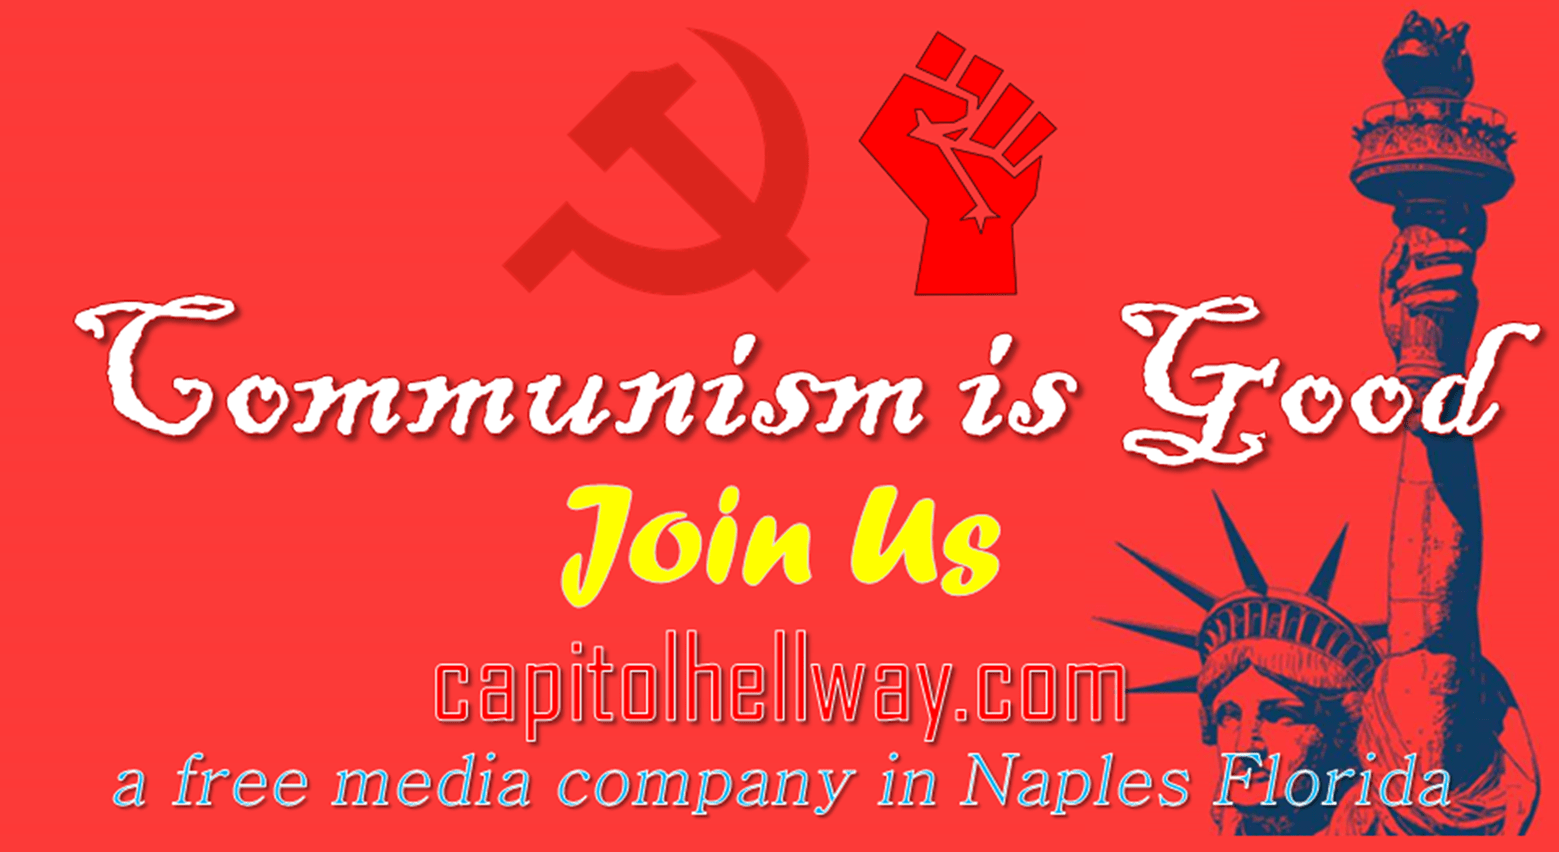 Communism is Good - Join Us